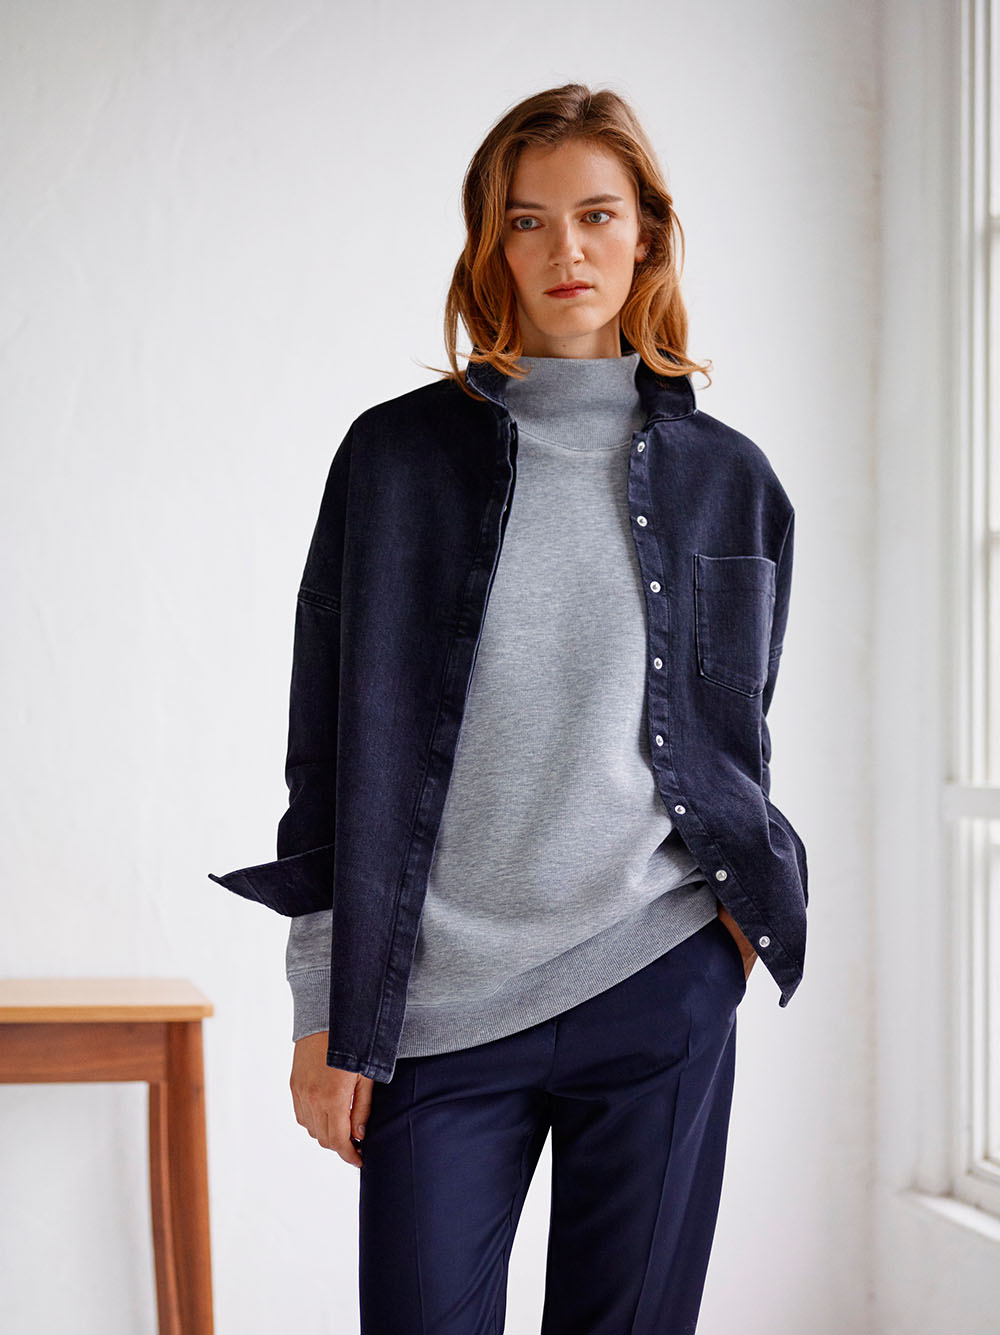 2015_10_19_TOPSHOP_BOUTIQUE_SHOT_10_019Custom_Name_copy